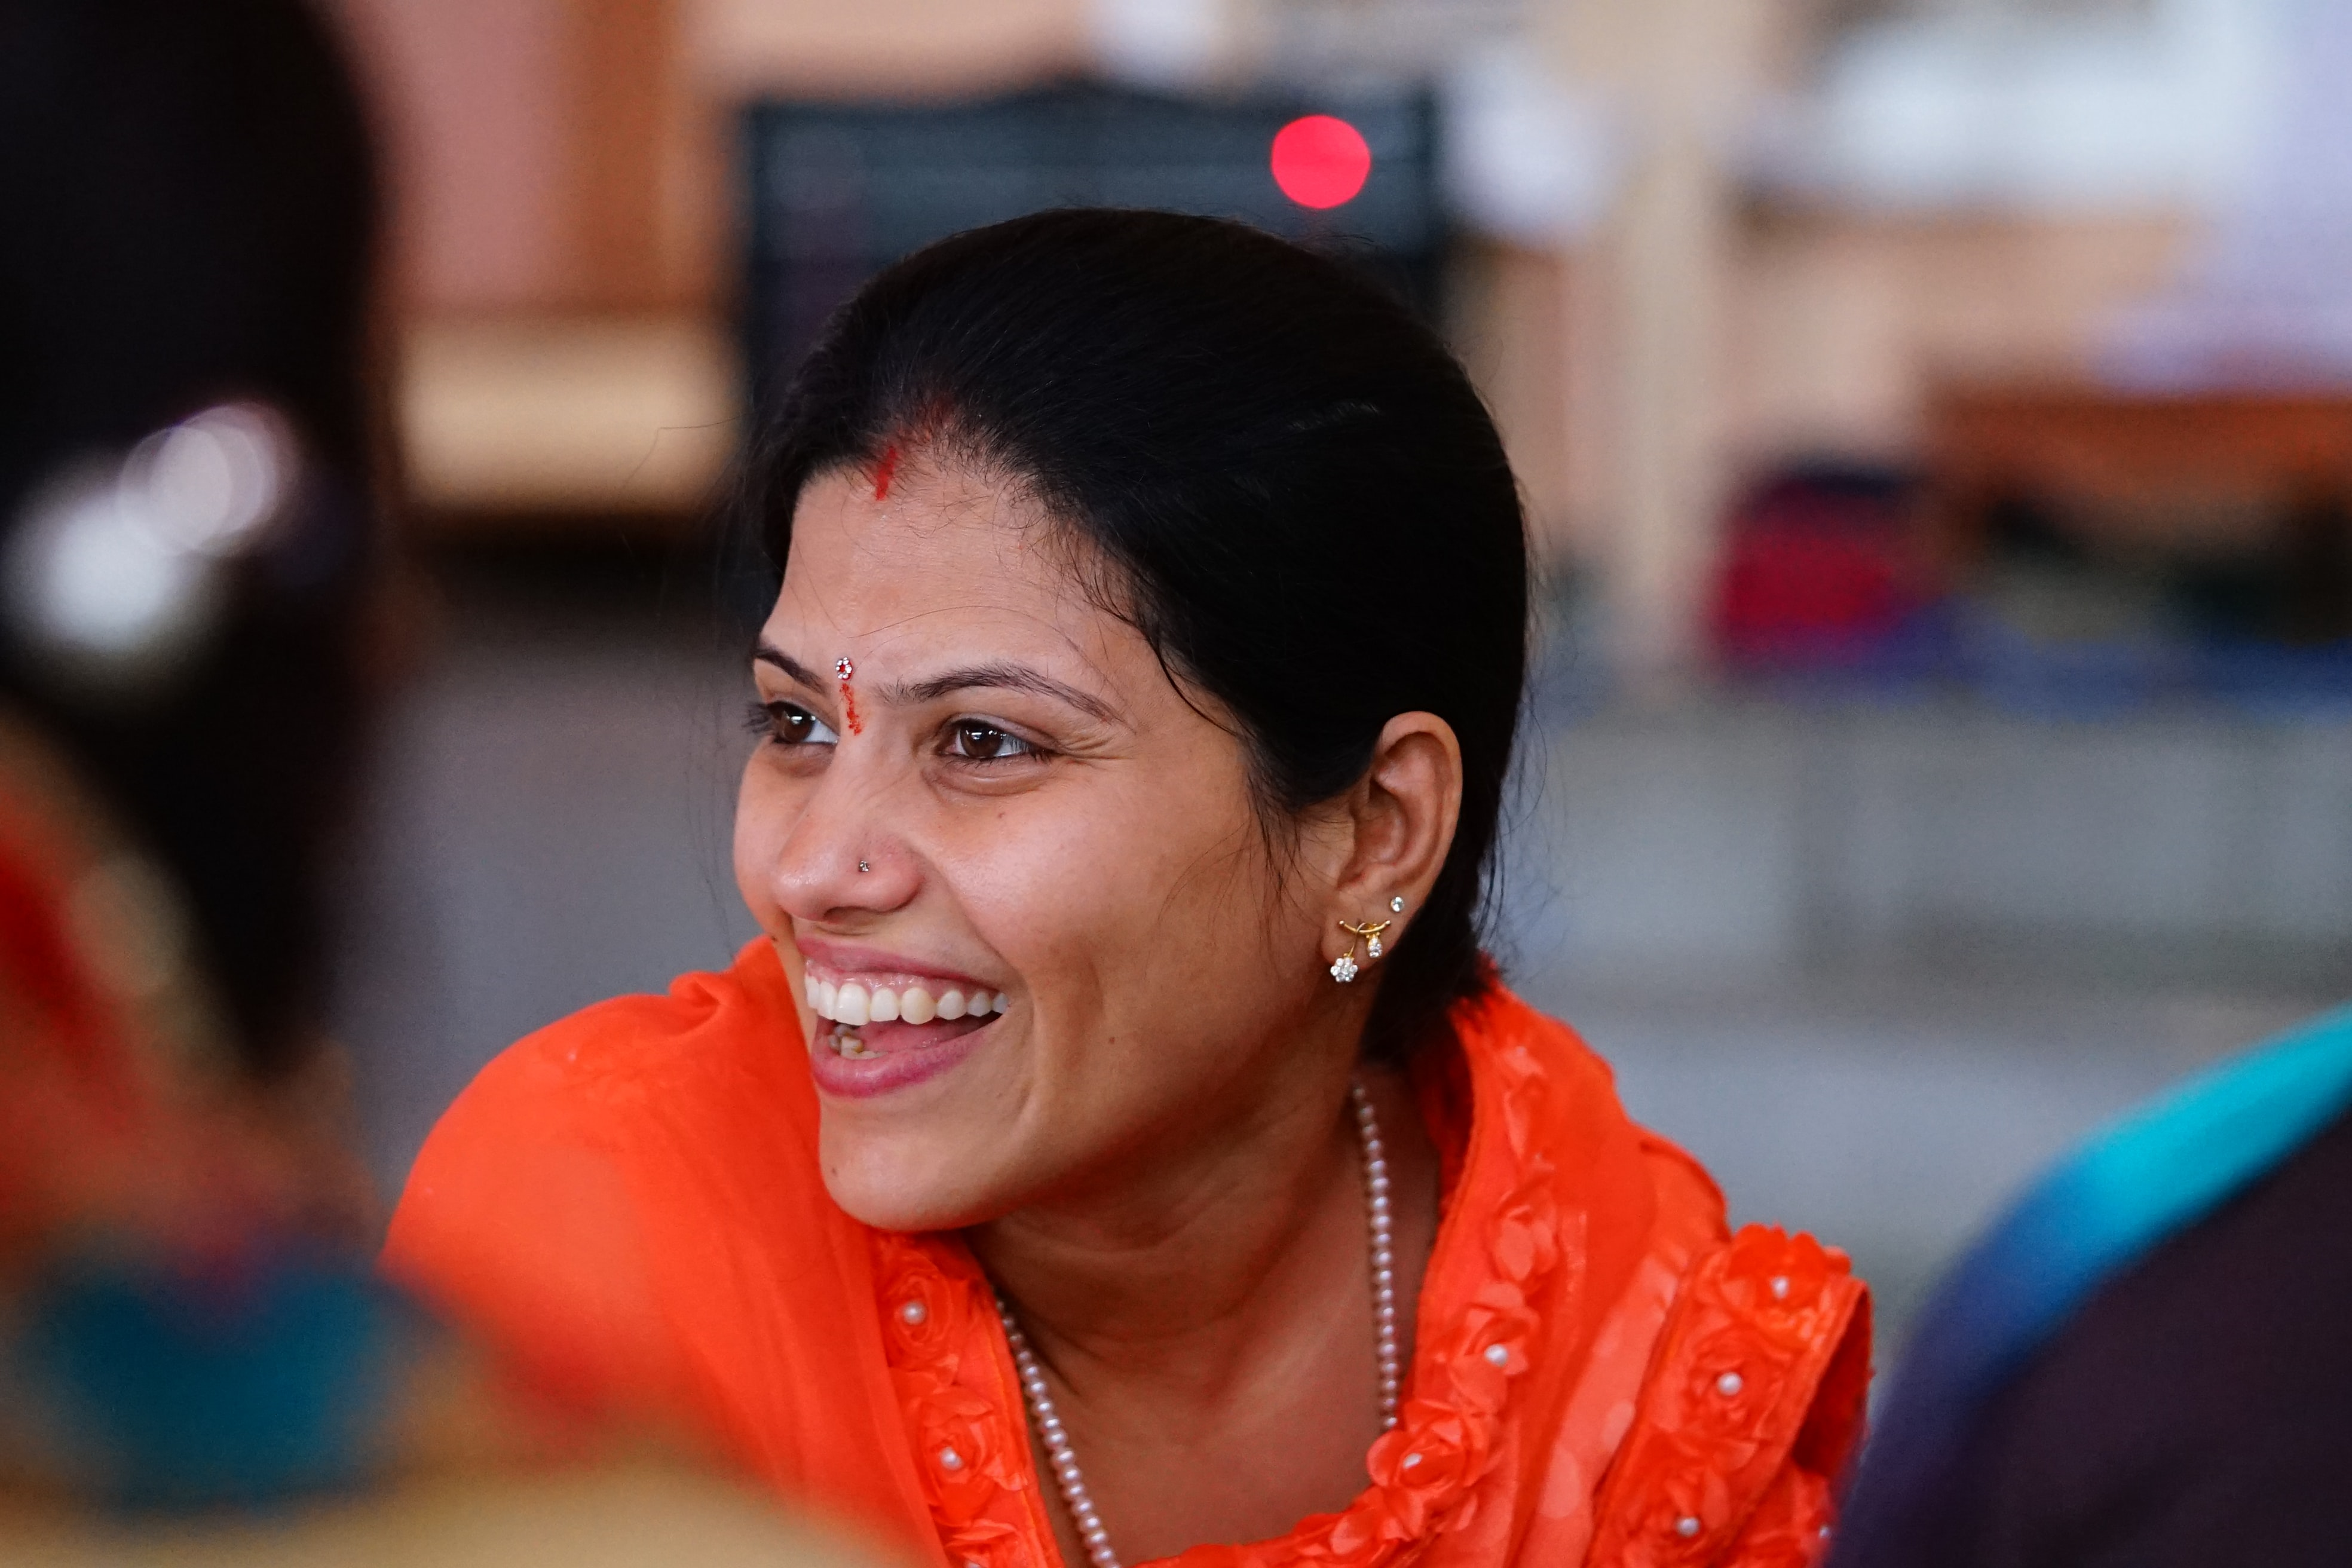 selective focus photography of smiling woman wearing red shirt